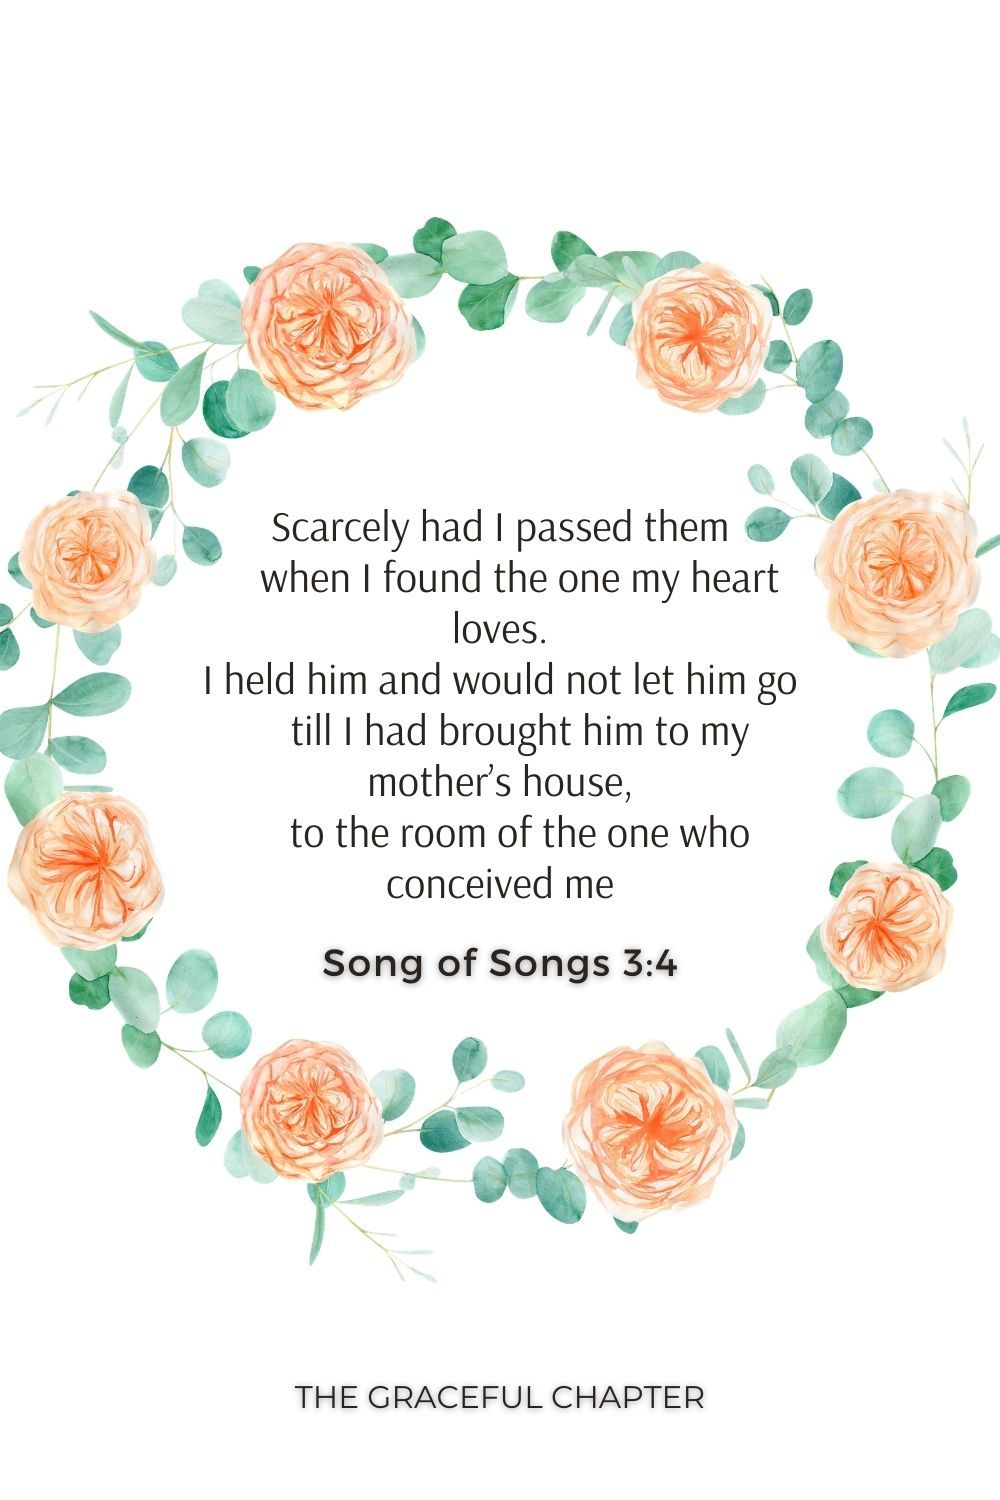 Scarcely had I passed them     when I found the one my heart loves. I held him and would not let him go     till I had brought him to my mother's house,     to the room of the one who conceived me. Song of Songs 3:4